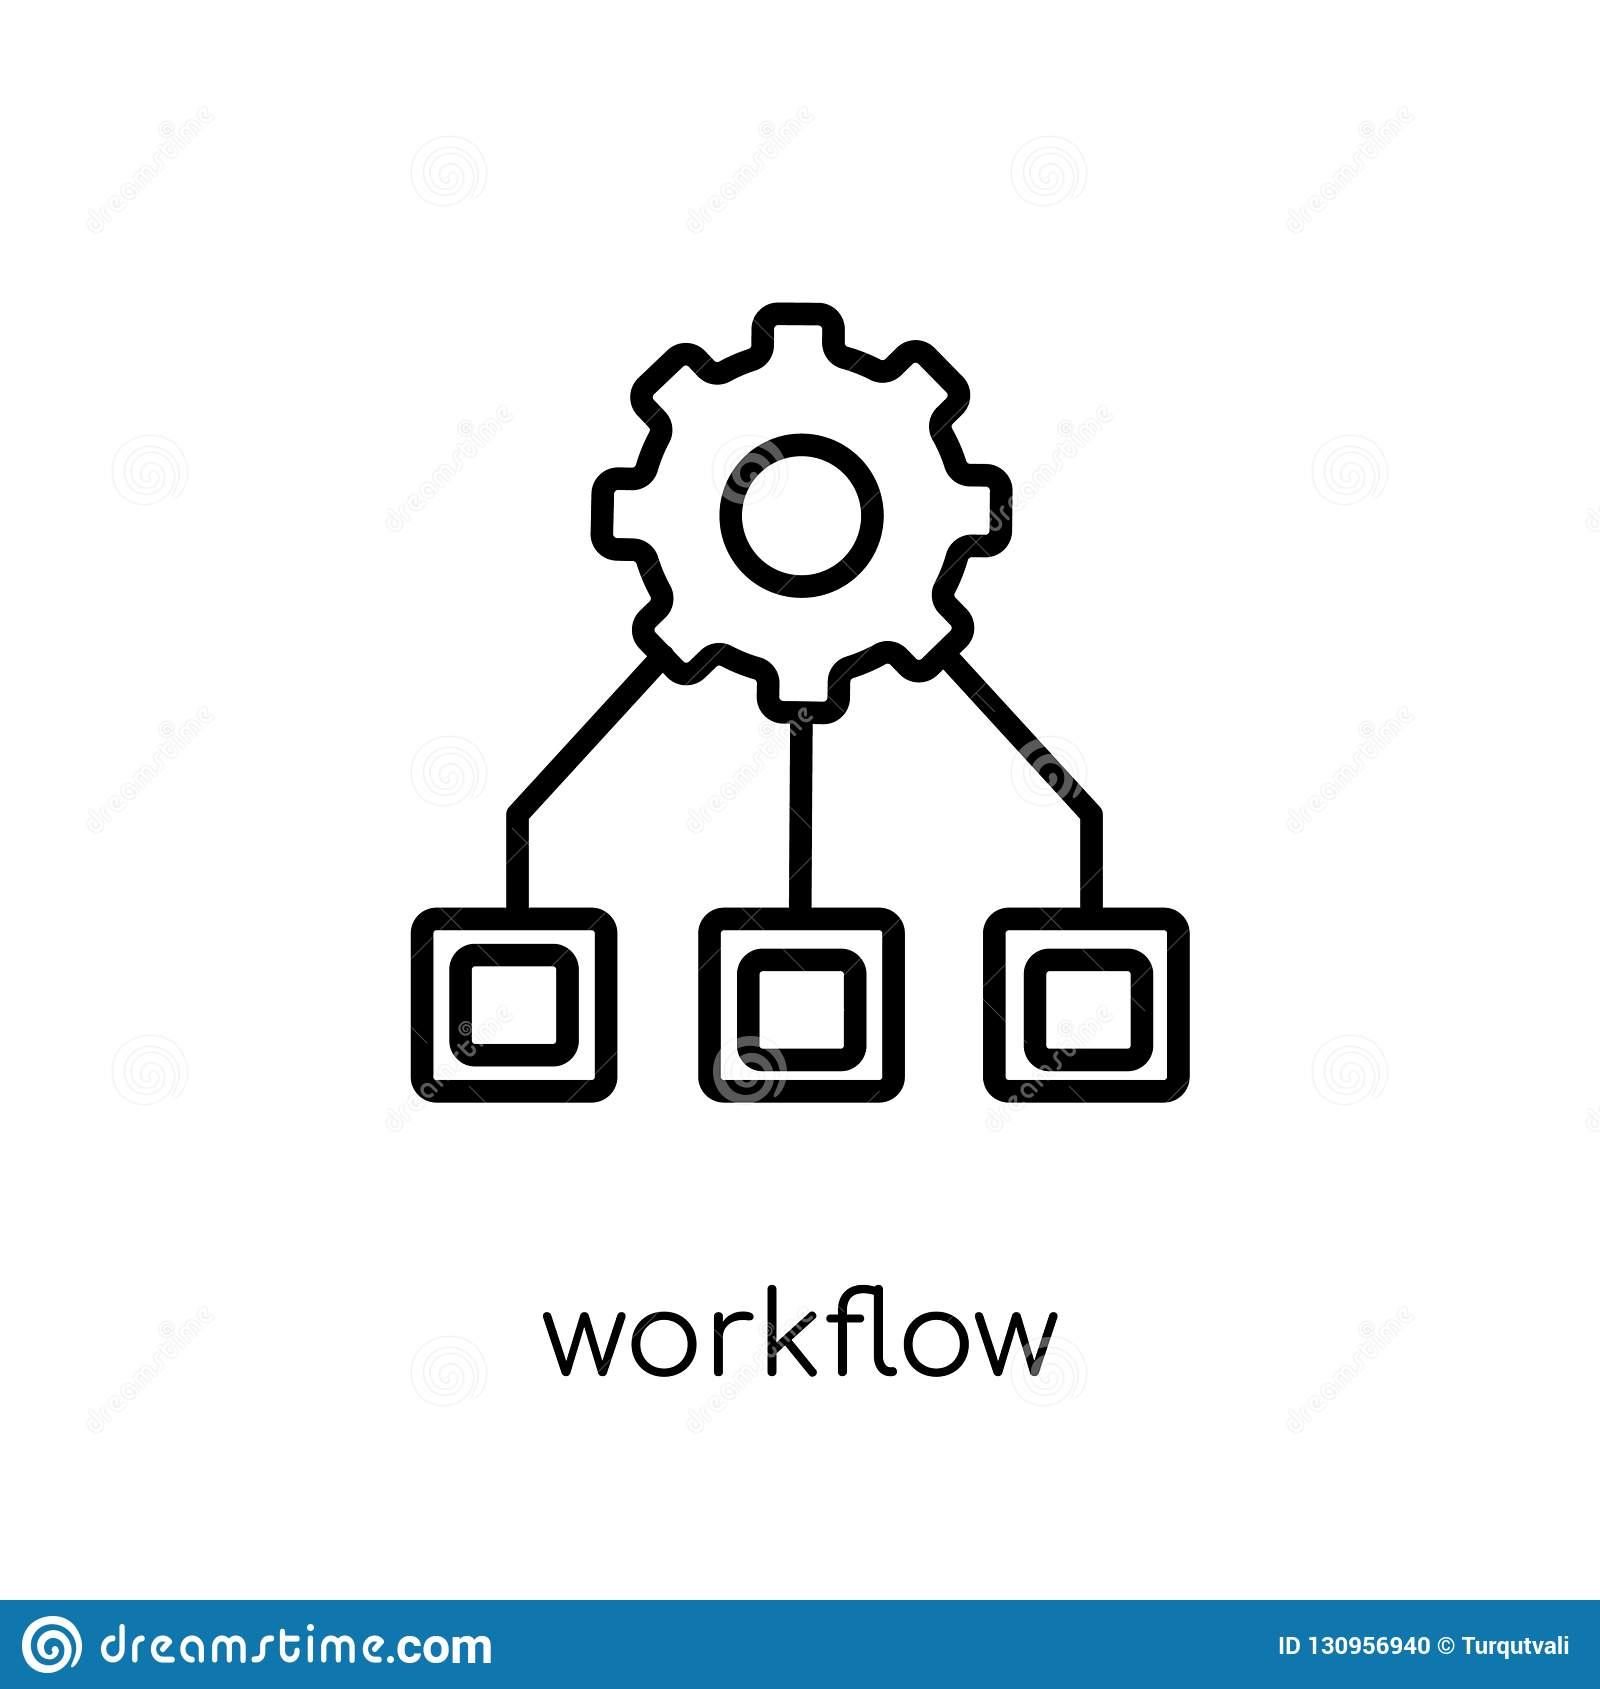 Workflow icon from collection.